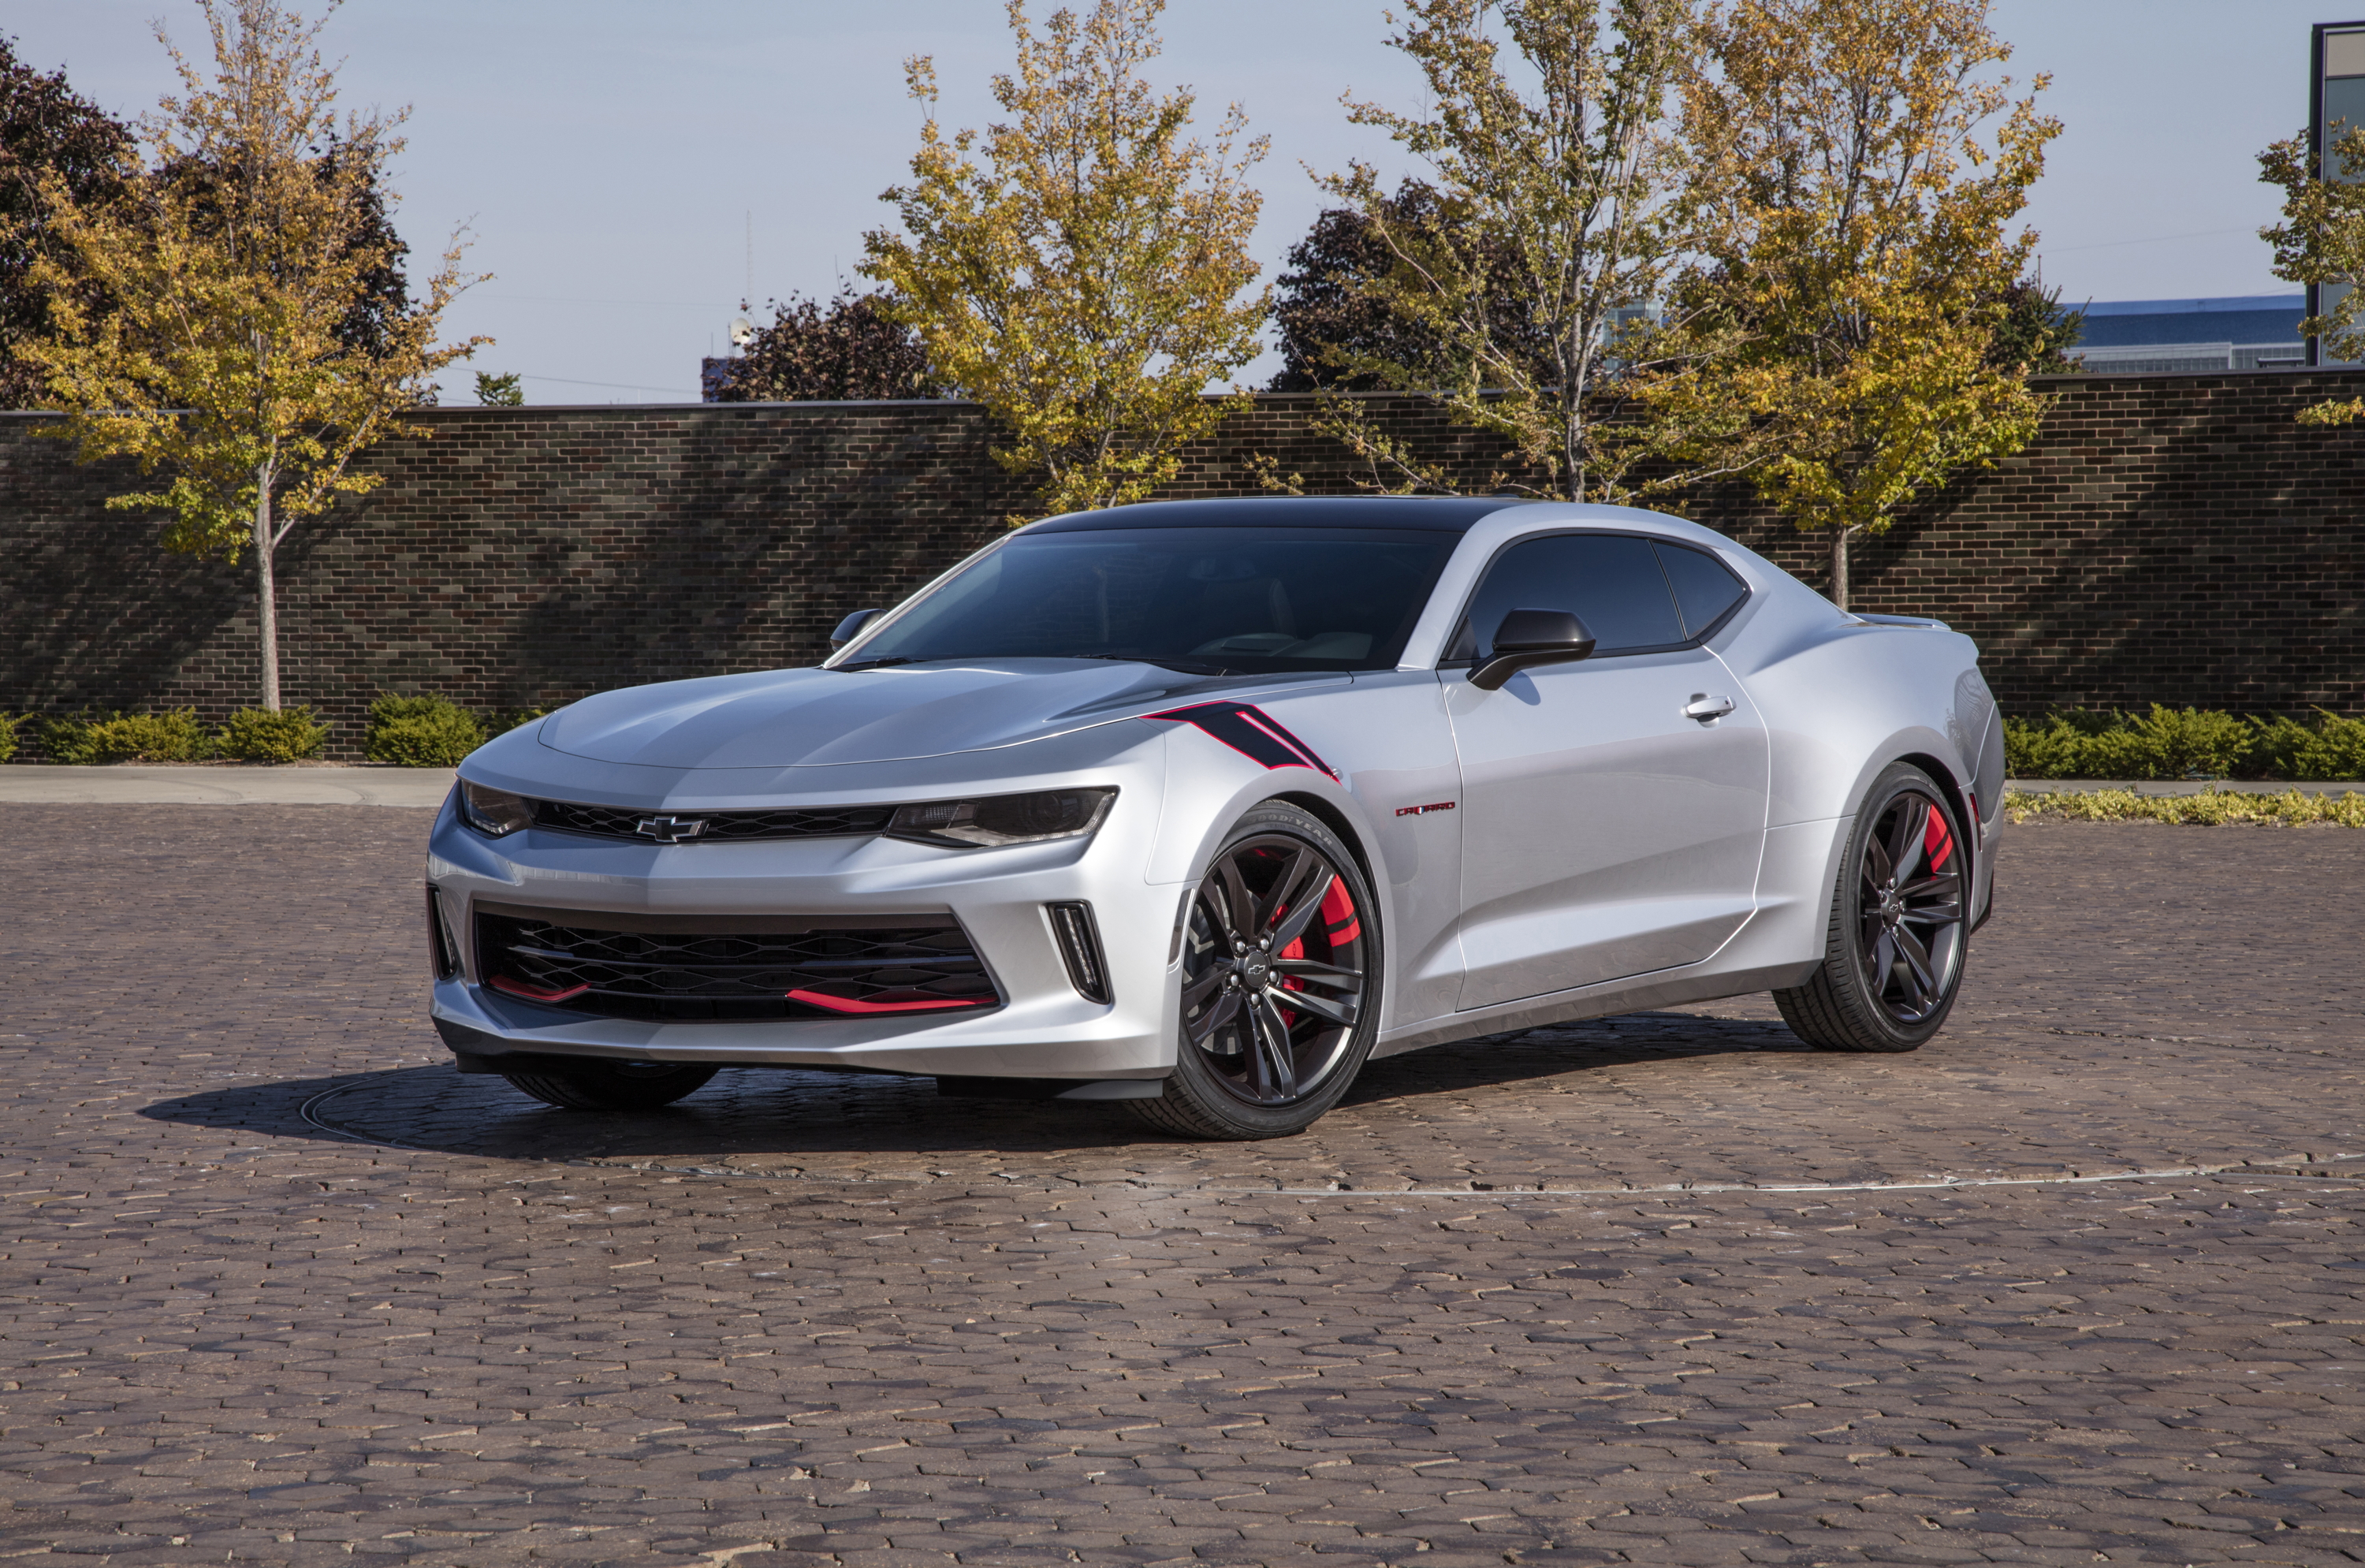 Chevrolet Red Line Concepts Showcase Latest Accessories